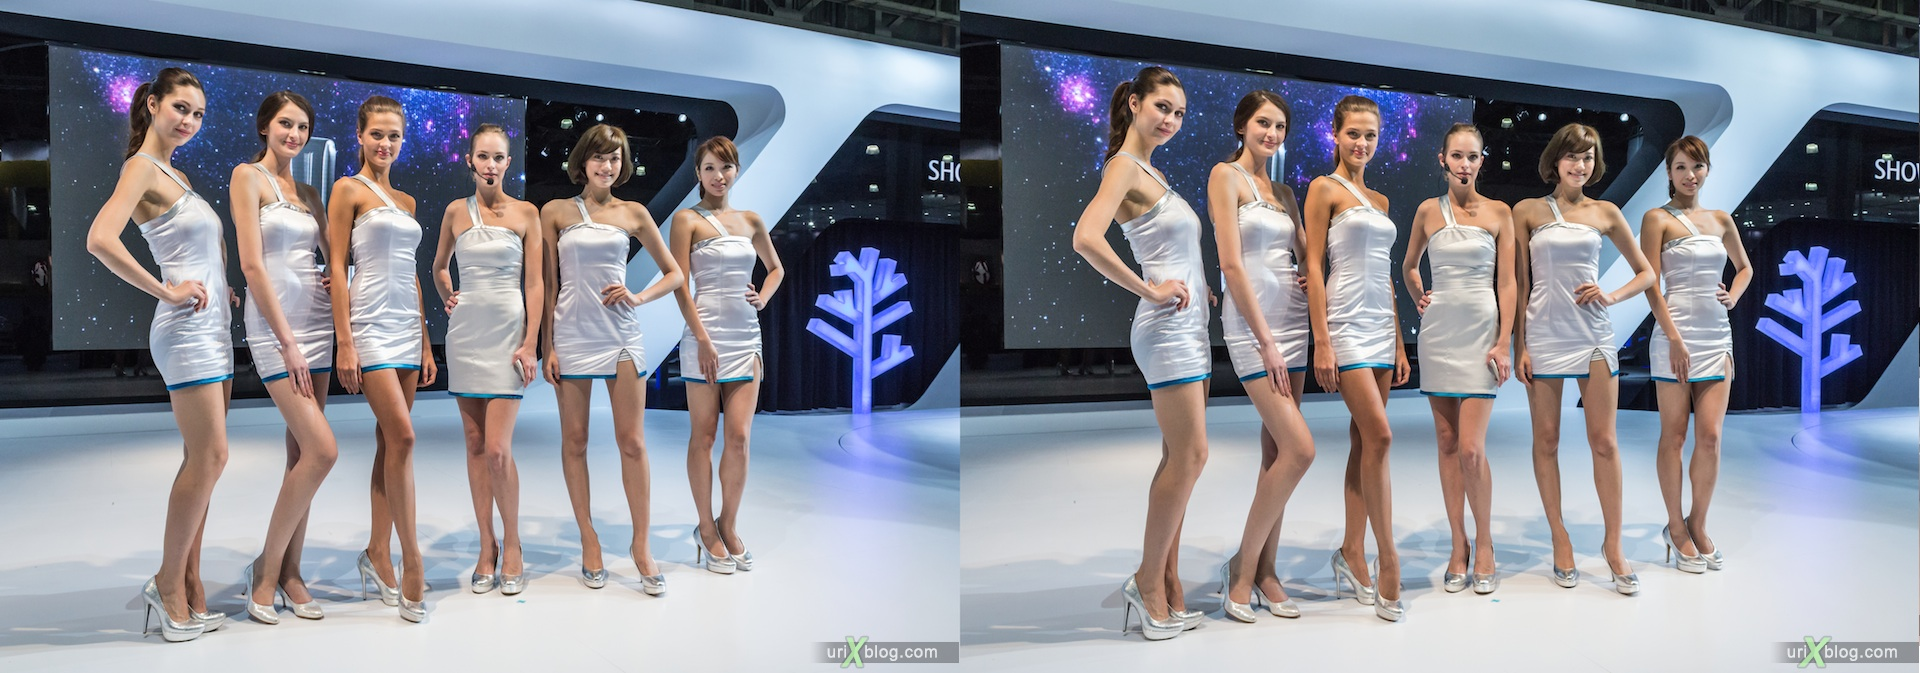 2012, Luxgen, Moscow International Automobile Salon, auto show, 3D, stereo pair, cross-eyed, crossview